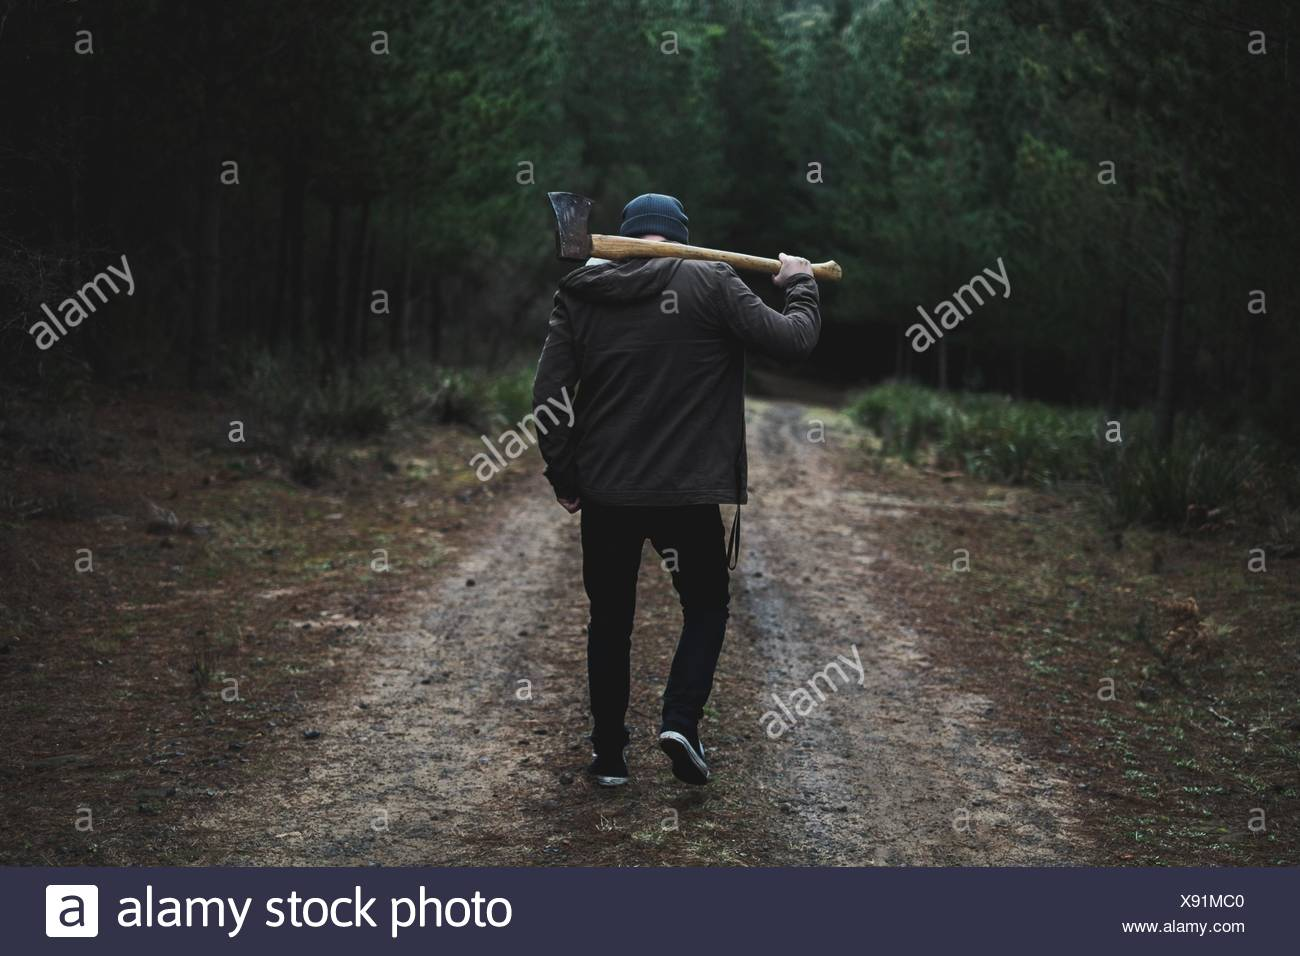 Rear View Of Man With Axe In Forest - Stock Image